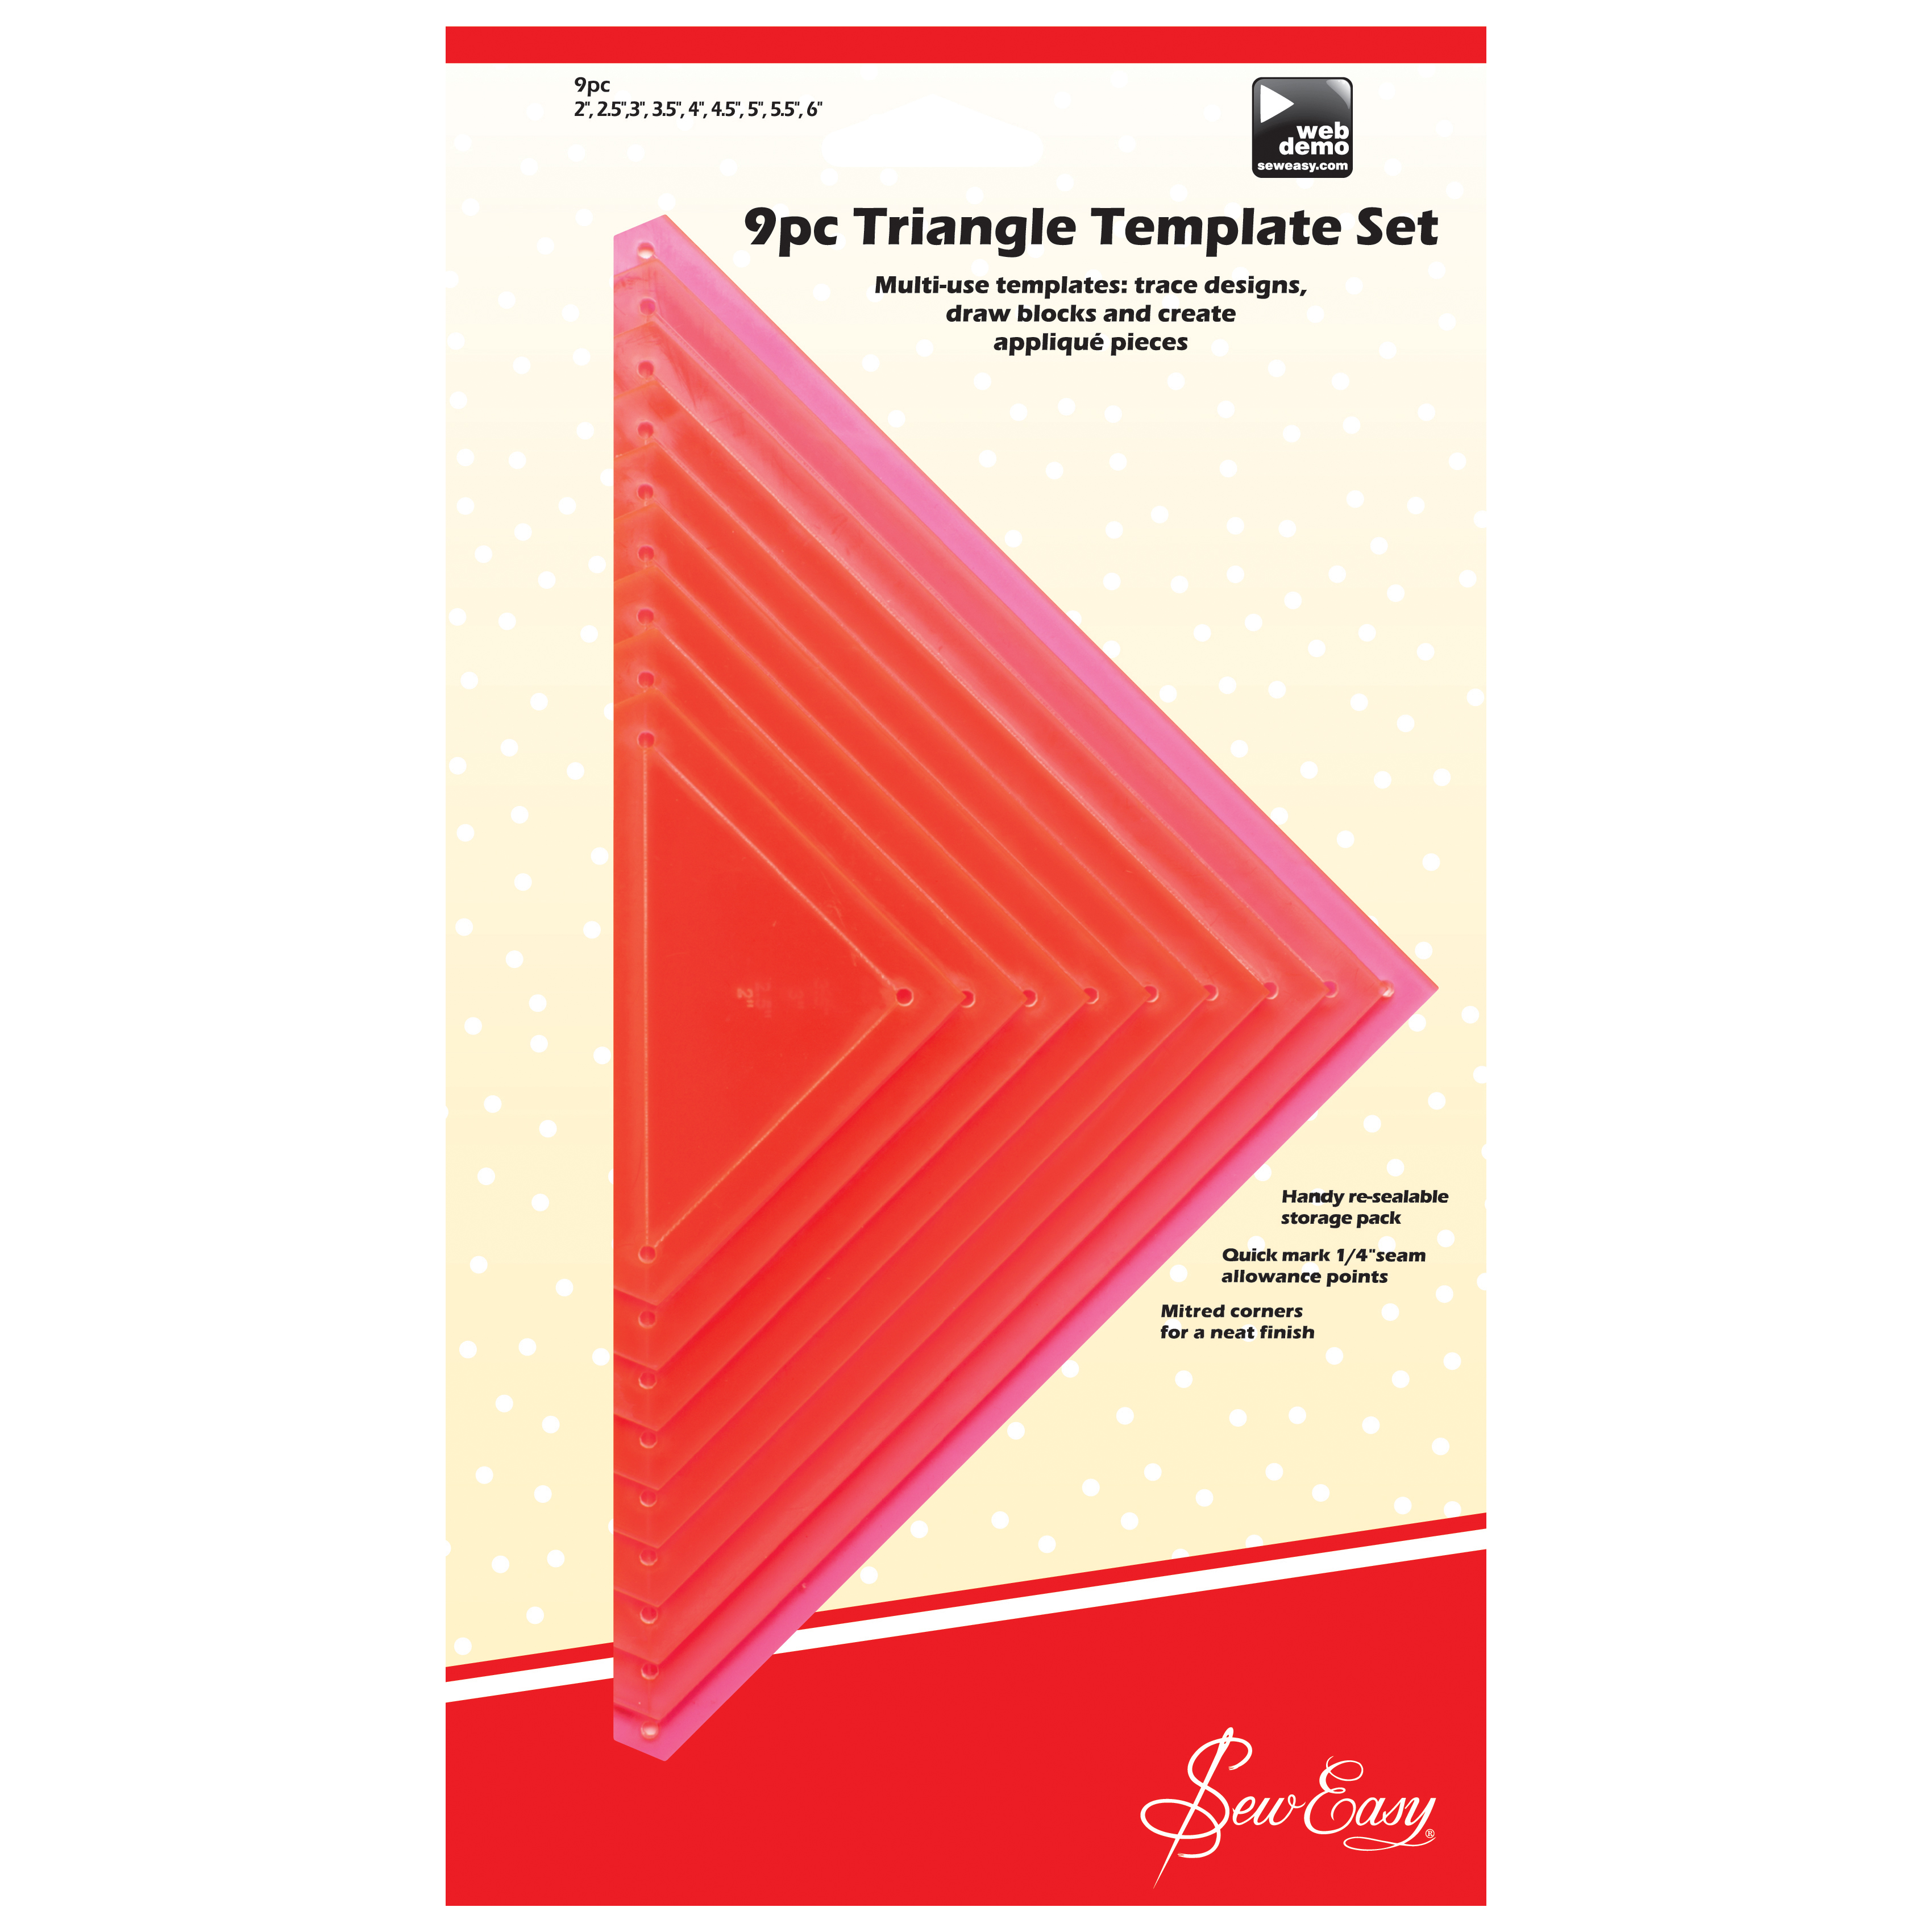 Sew Easy 9 Piece Triangle Template Set Ergg08 Pnk Touchofclass In